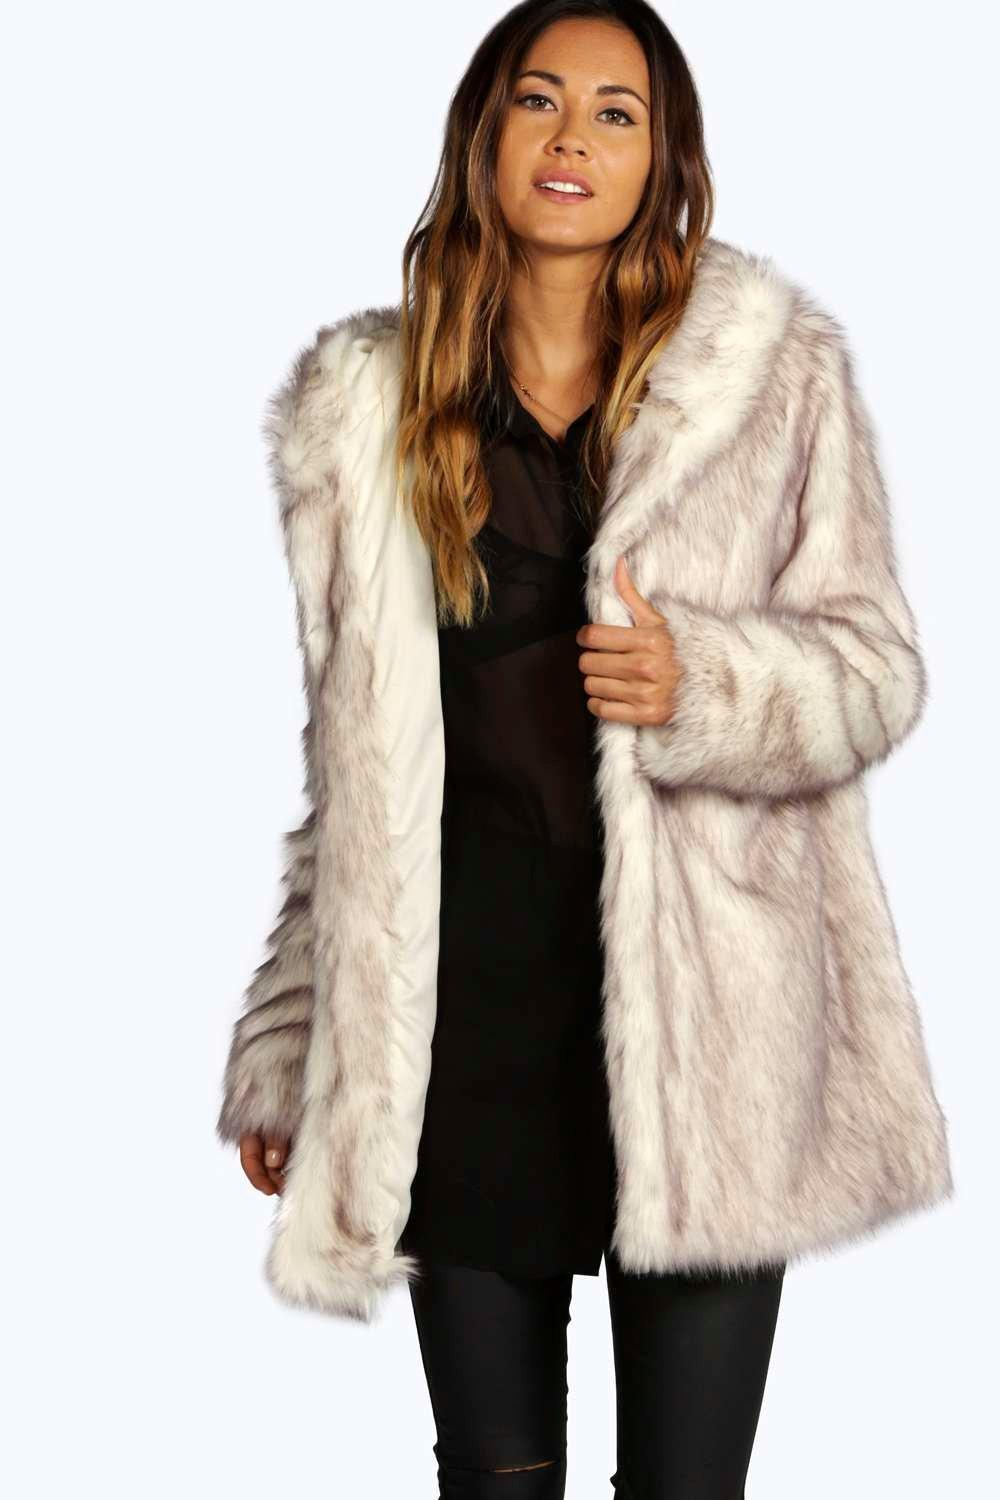 70s Jackets, Furs, Vests, Ponchos Womens Boutique Hooded Faux Fur Coat - white - 12 $90.00 AT vintagedancer.com